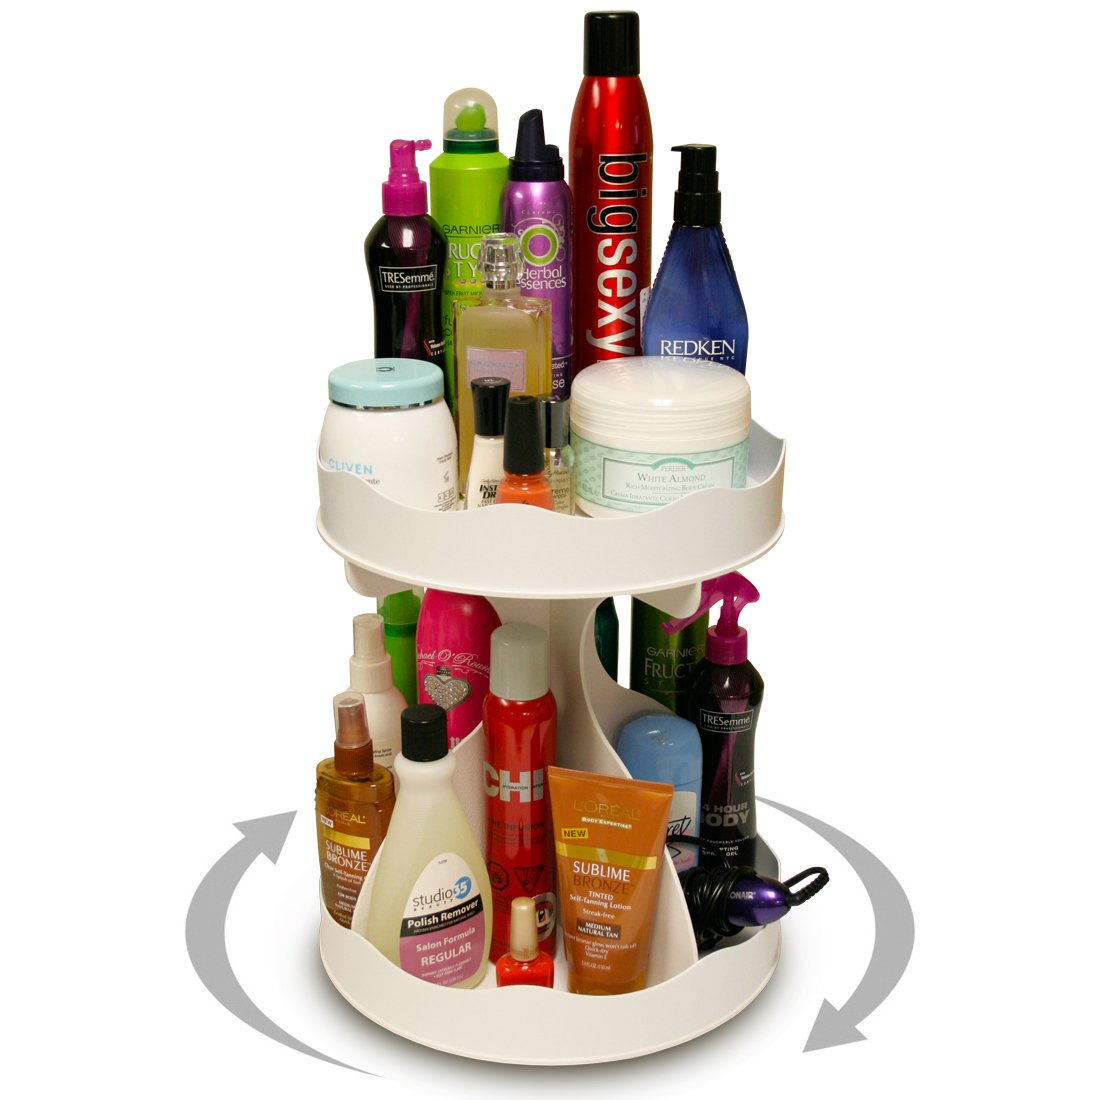 Cosmetic Organizer for Tall Bottles That Spins..no More Cluttered Countertop! Pretty in White, goes with Any Decor. Proudly Made in the USA ! by PPM.